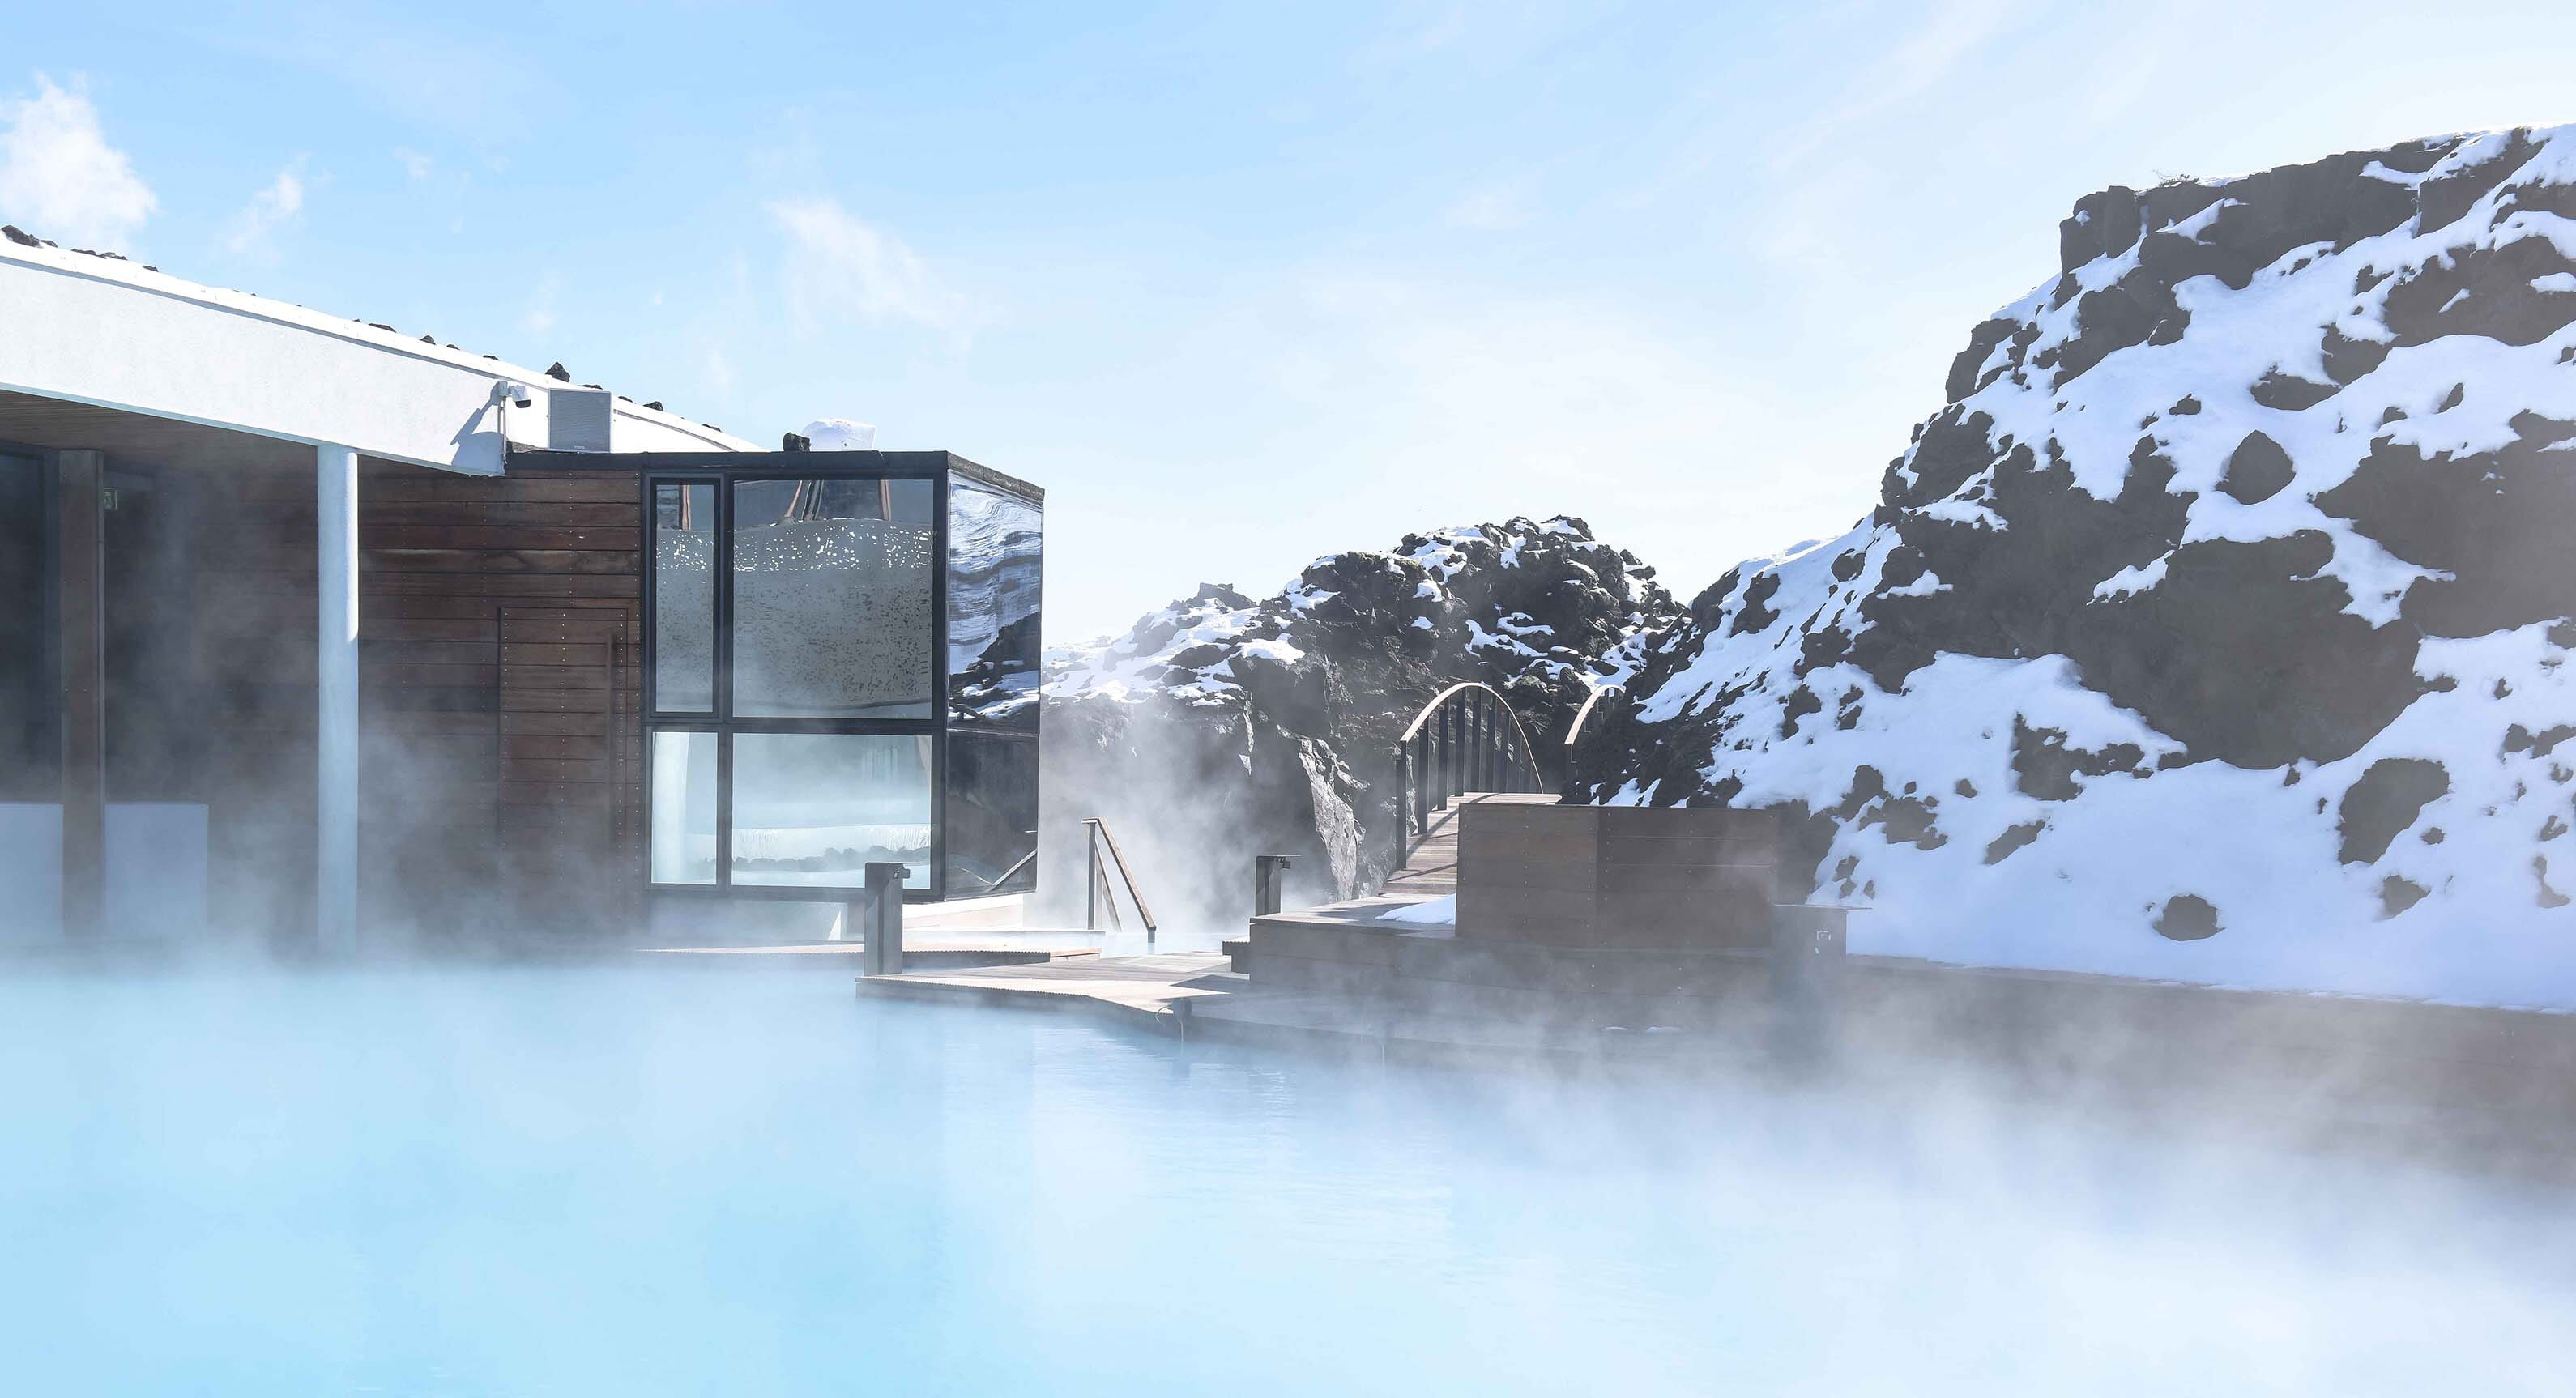 Take A Look Inside The Incredible Blue Lagoon Retreat Hotel In Iceland